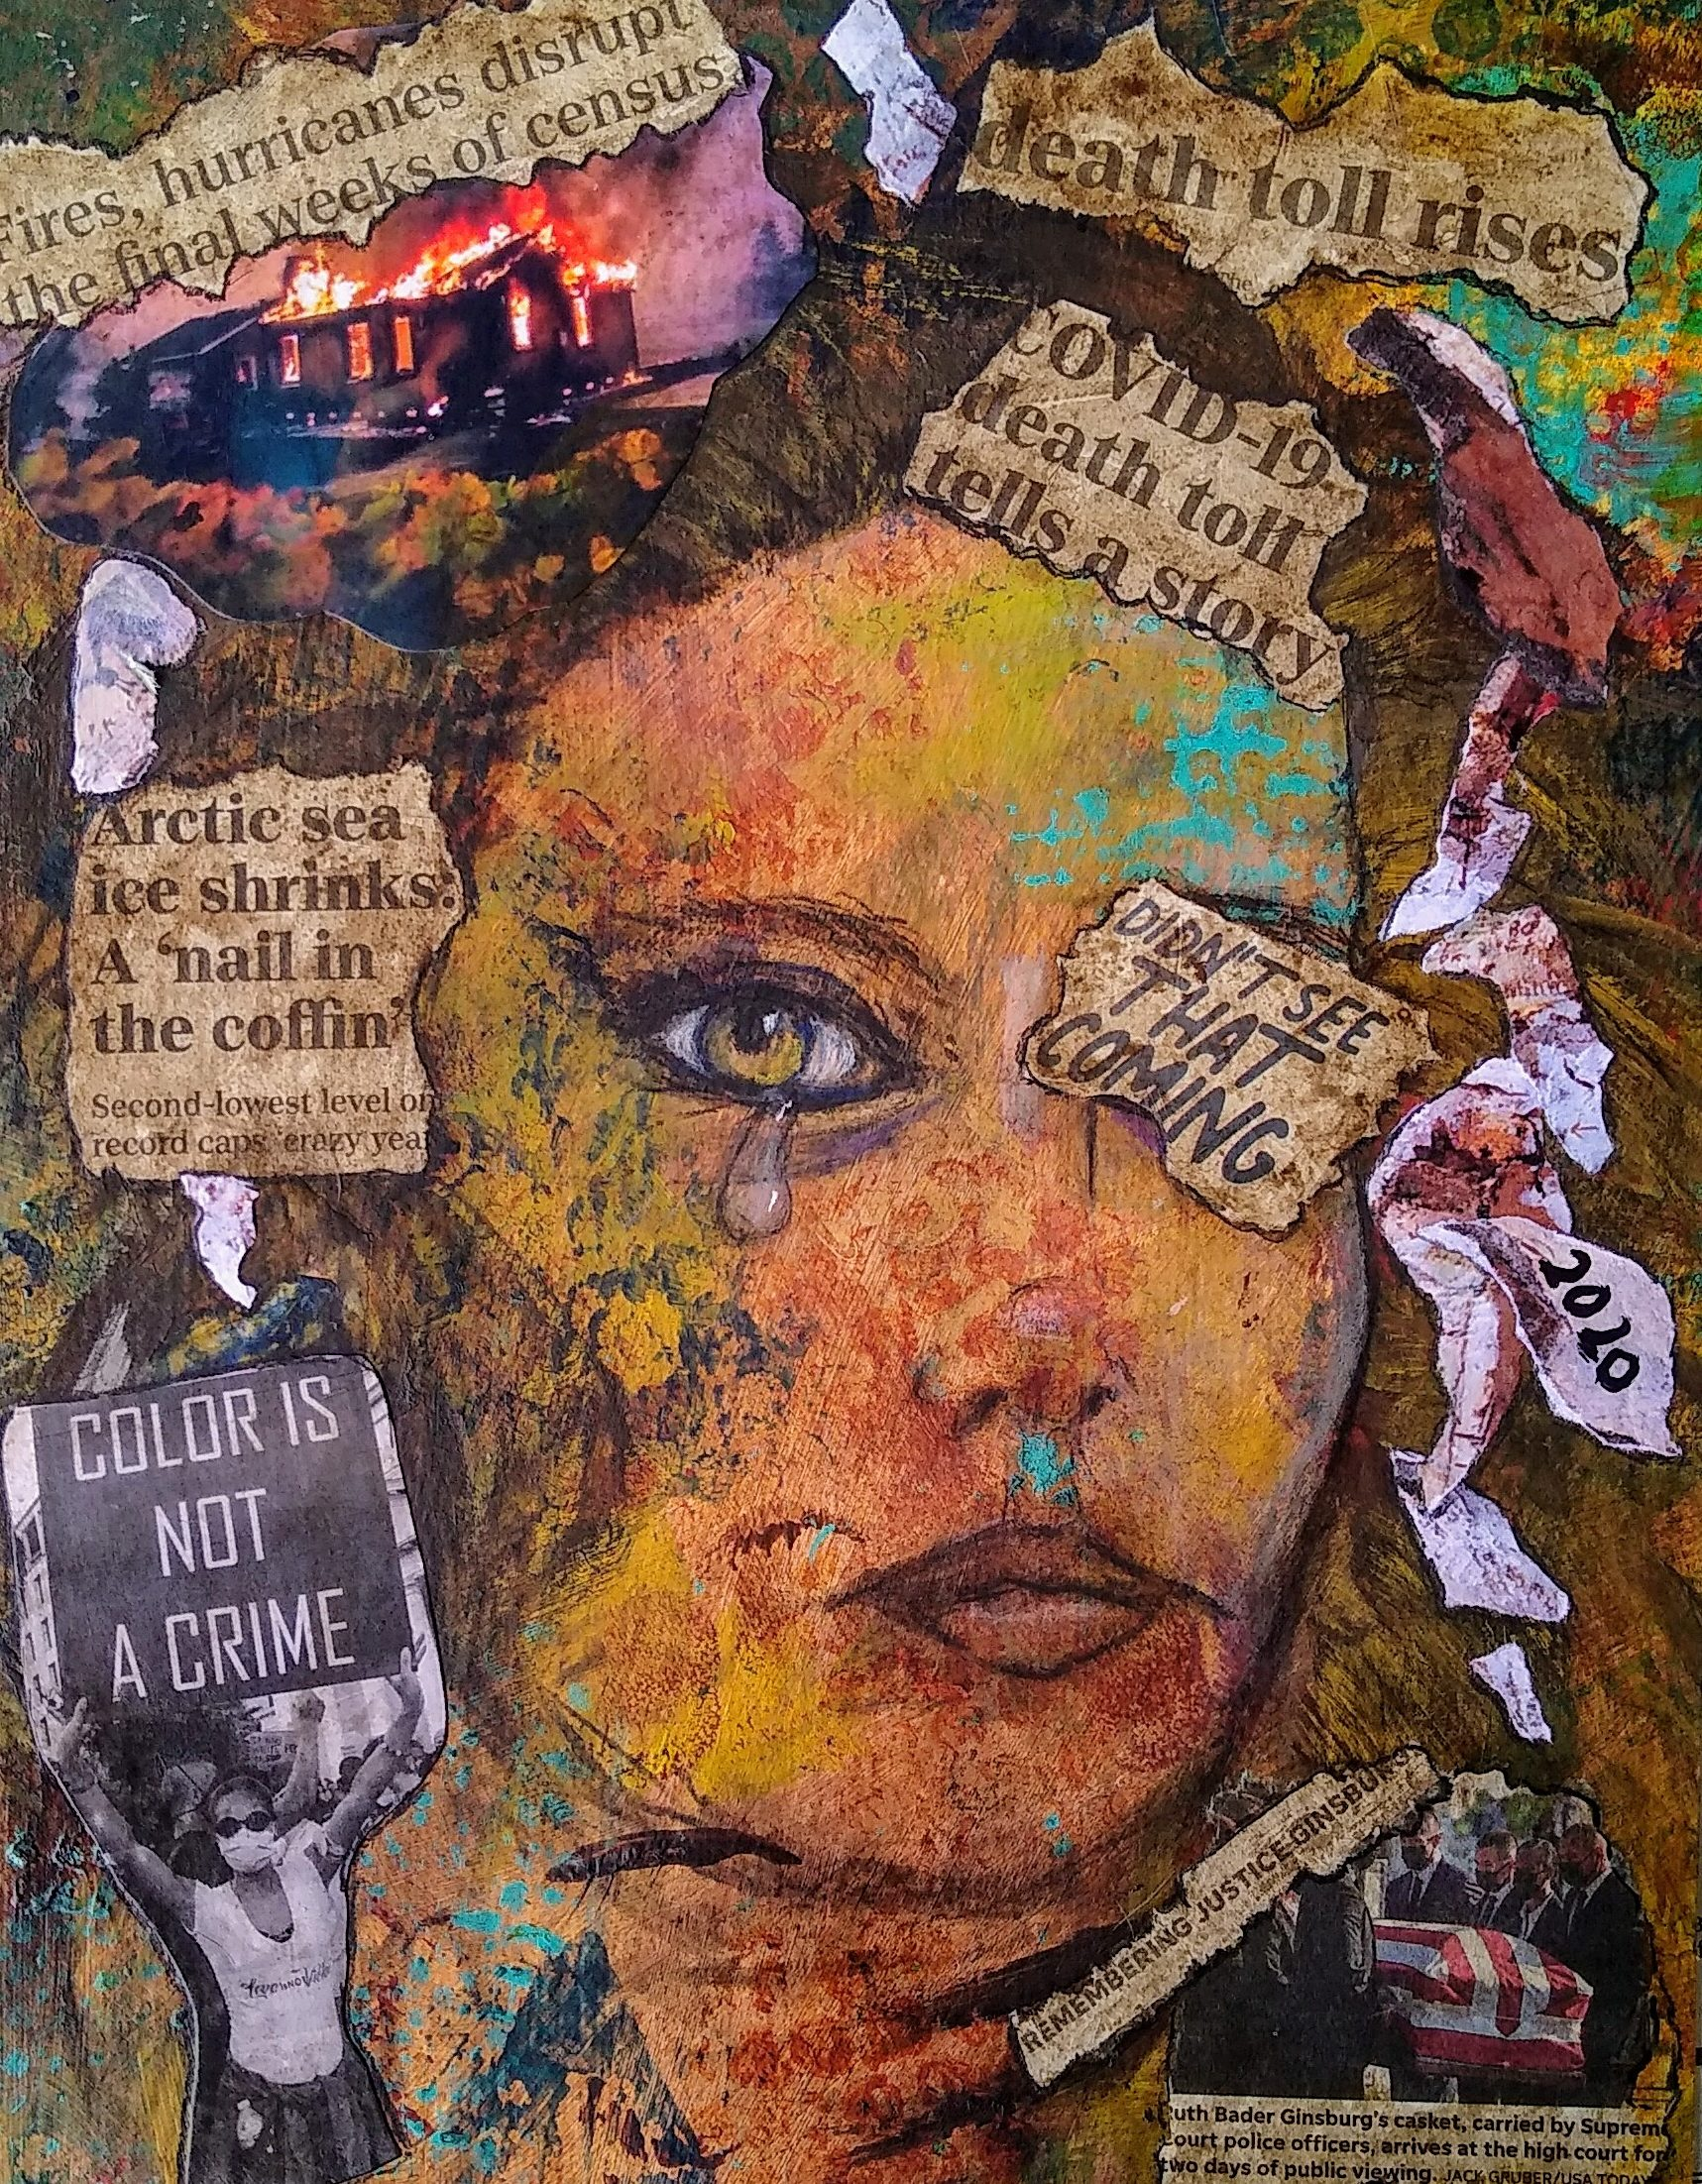 'My World Torn to Pieces -- Didn't See It Coming!', mixed media by Gail Husveth (NFS) ⎼ 'This was a very emotionally difficult artwork for me as I usually want to paint joyful, colorful work. Started with the portrait done in charcoal, then stenciled colors and after added the newspaper clippings which reflect the world today. 2020 has been a very sad year for many people.'